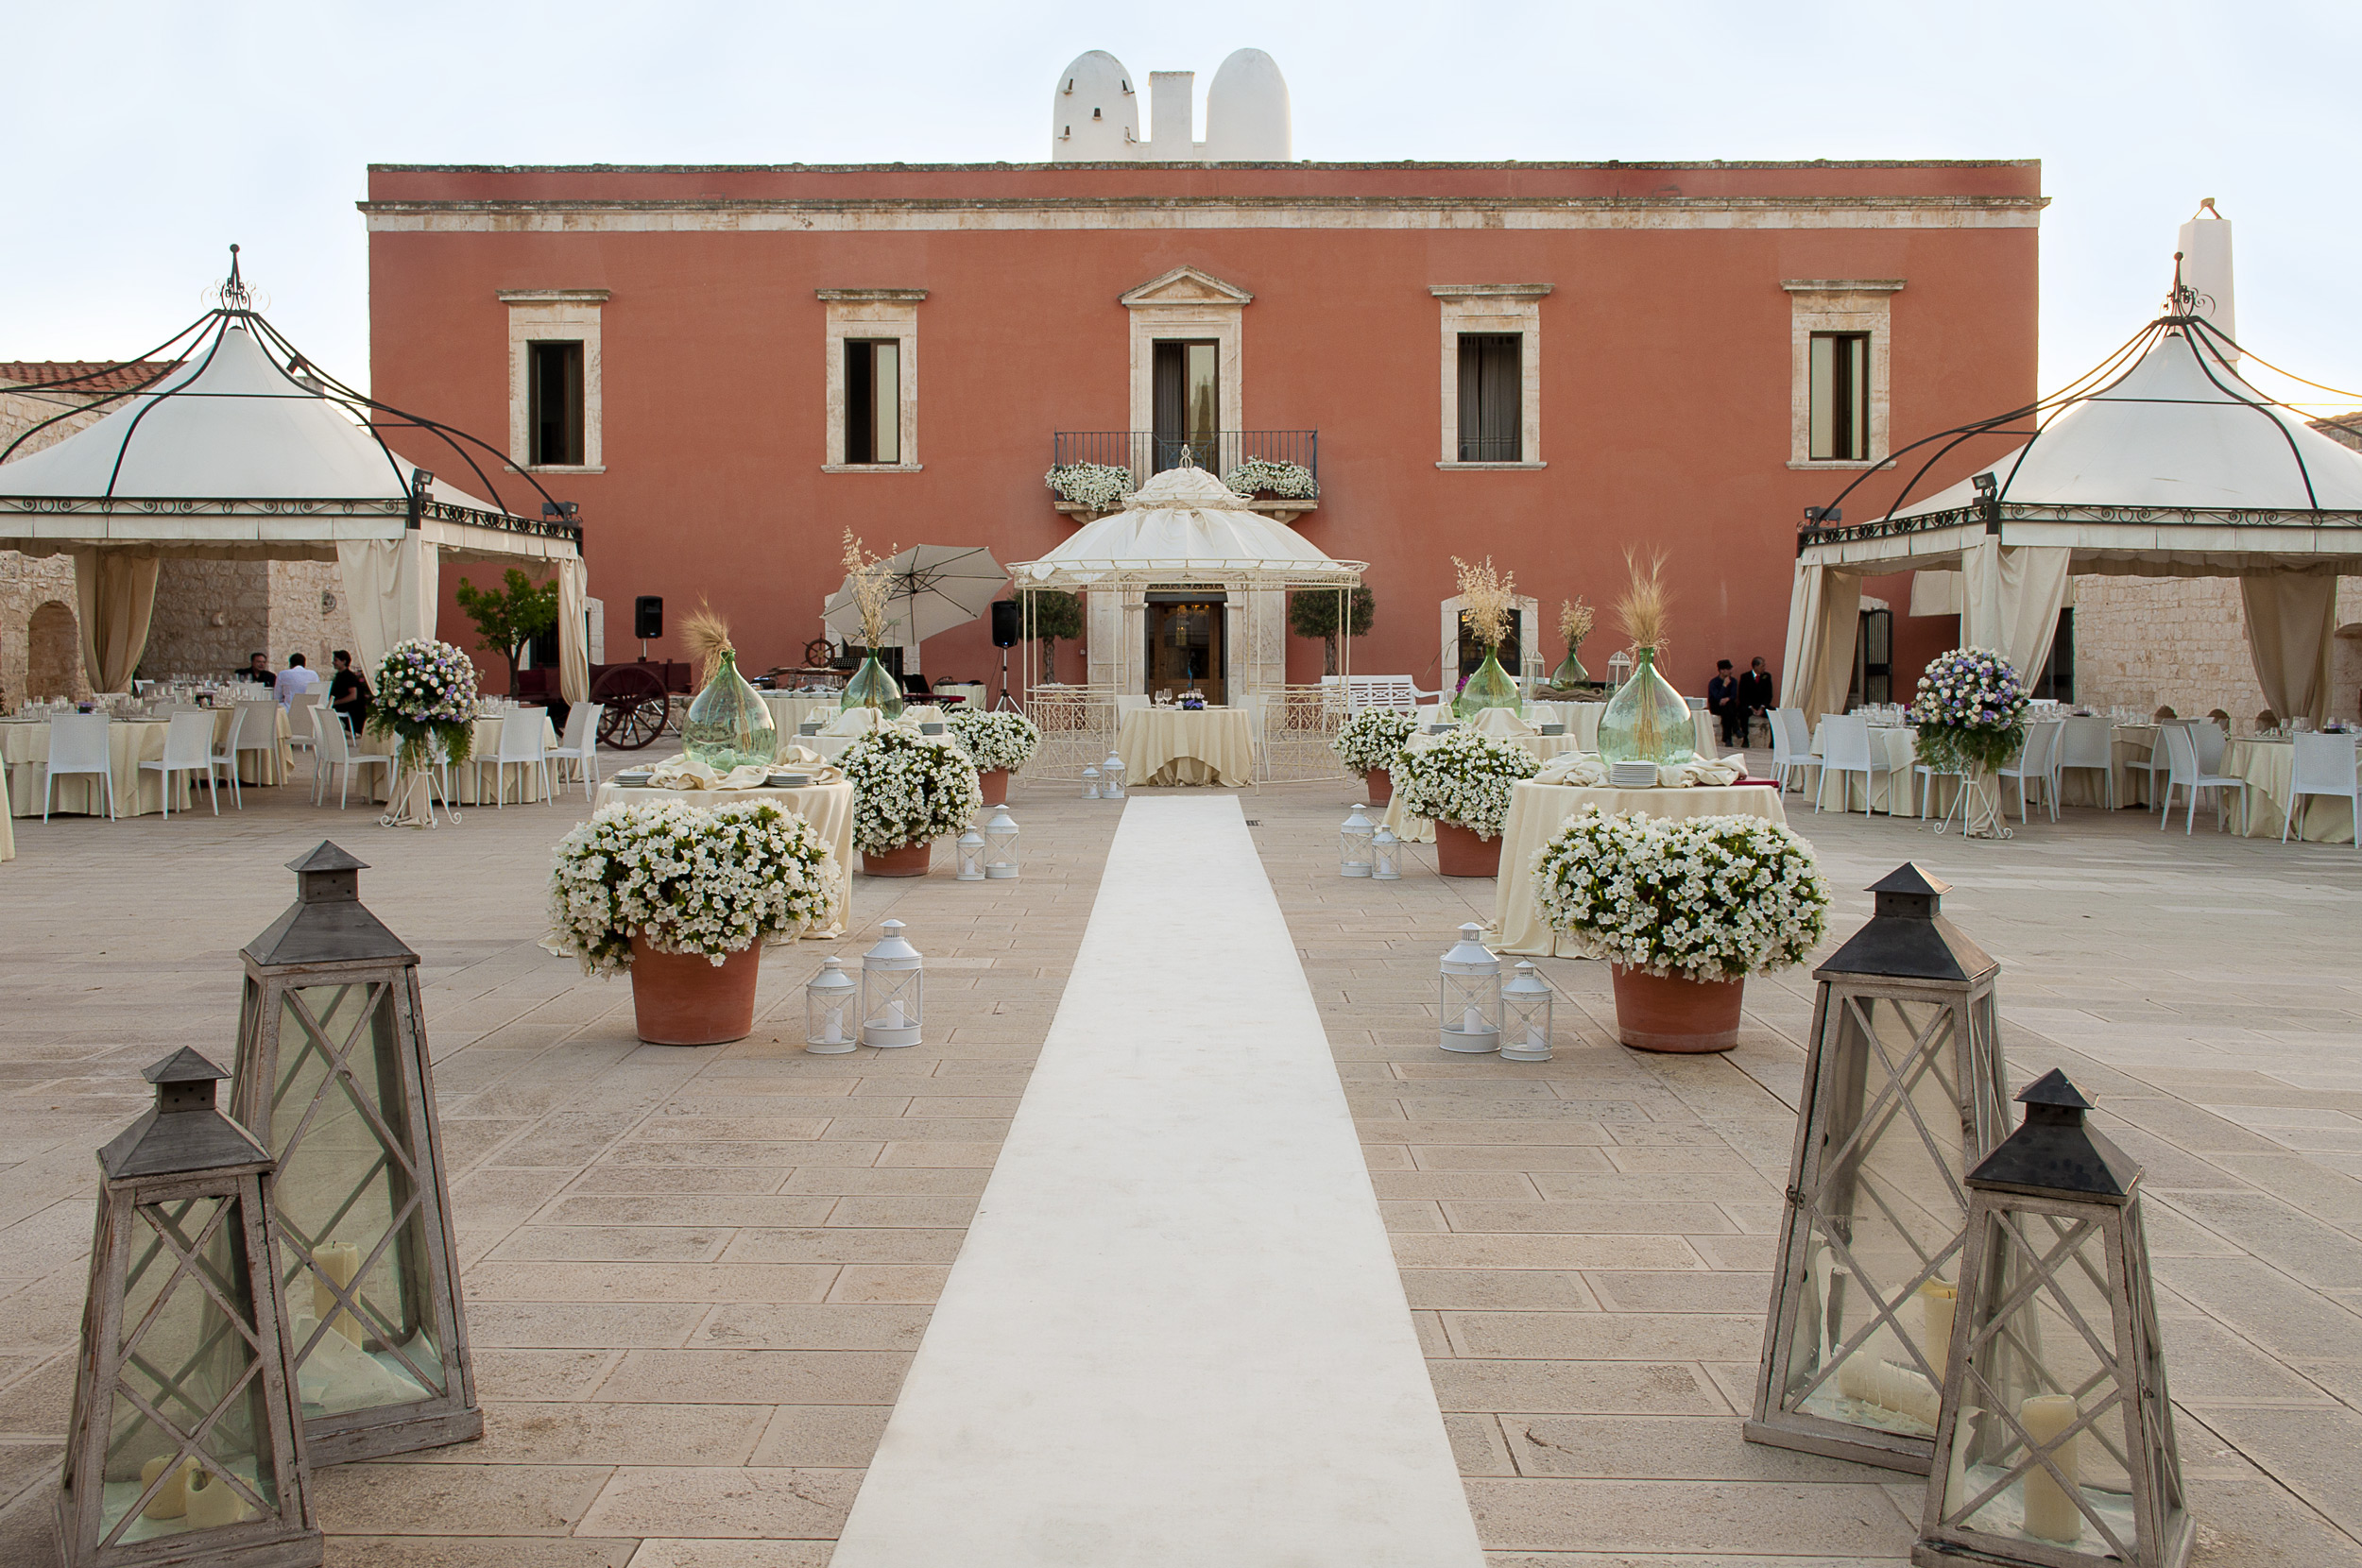 Matrimonio Country Chic Hotel : Le migliori location per matrimonio country chic a bari